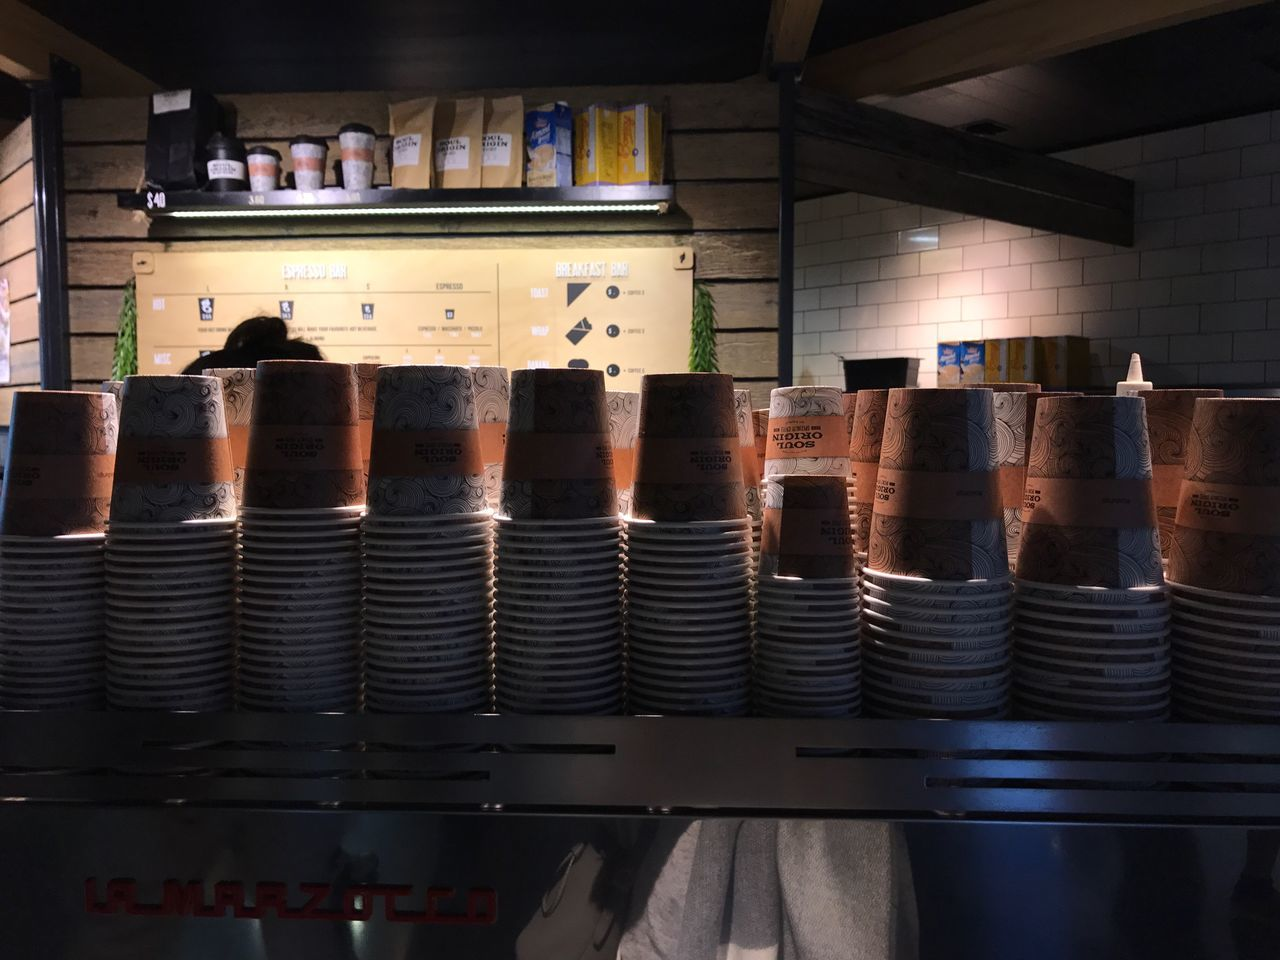 Waiting for my afternoon Coffee ☕️ | Indoors  Shelf Food And Drink Industry Food And Drink Large Group Of Objects Bottle Arrangement No People Machinery Food Stack Drink Industry Can Day Freshness